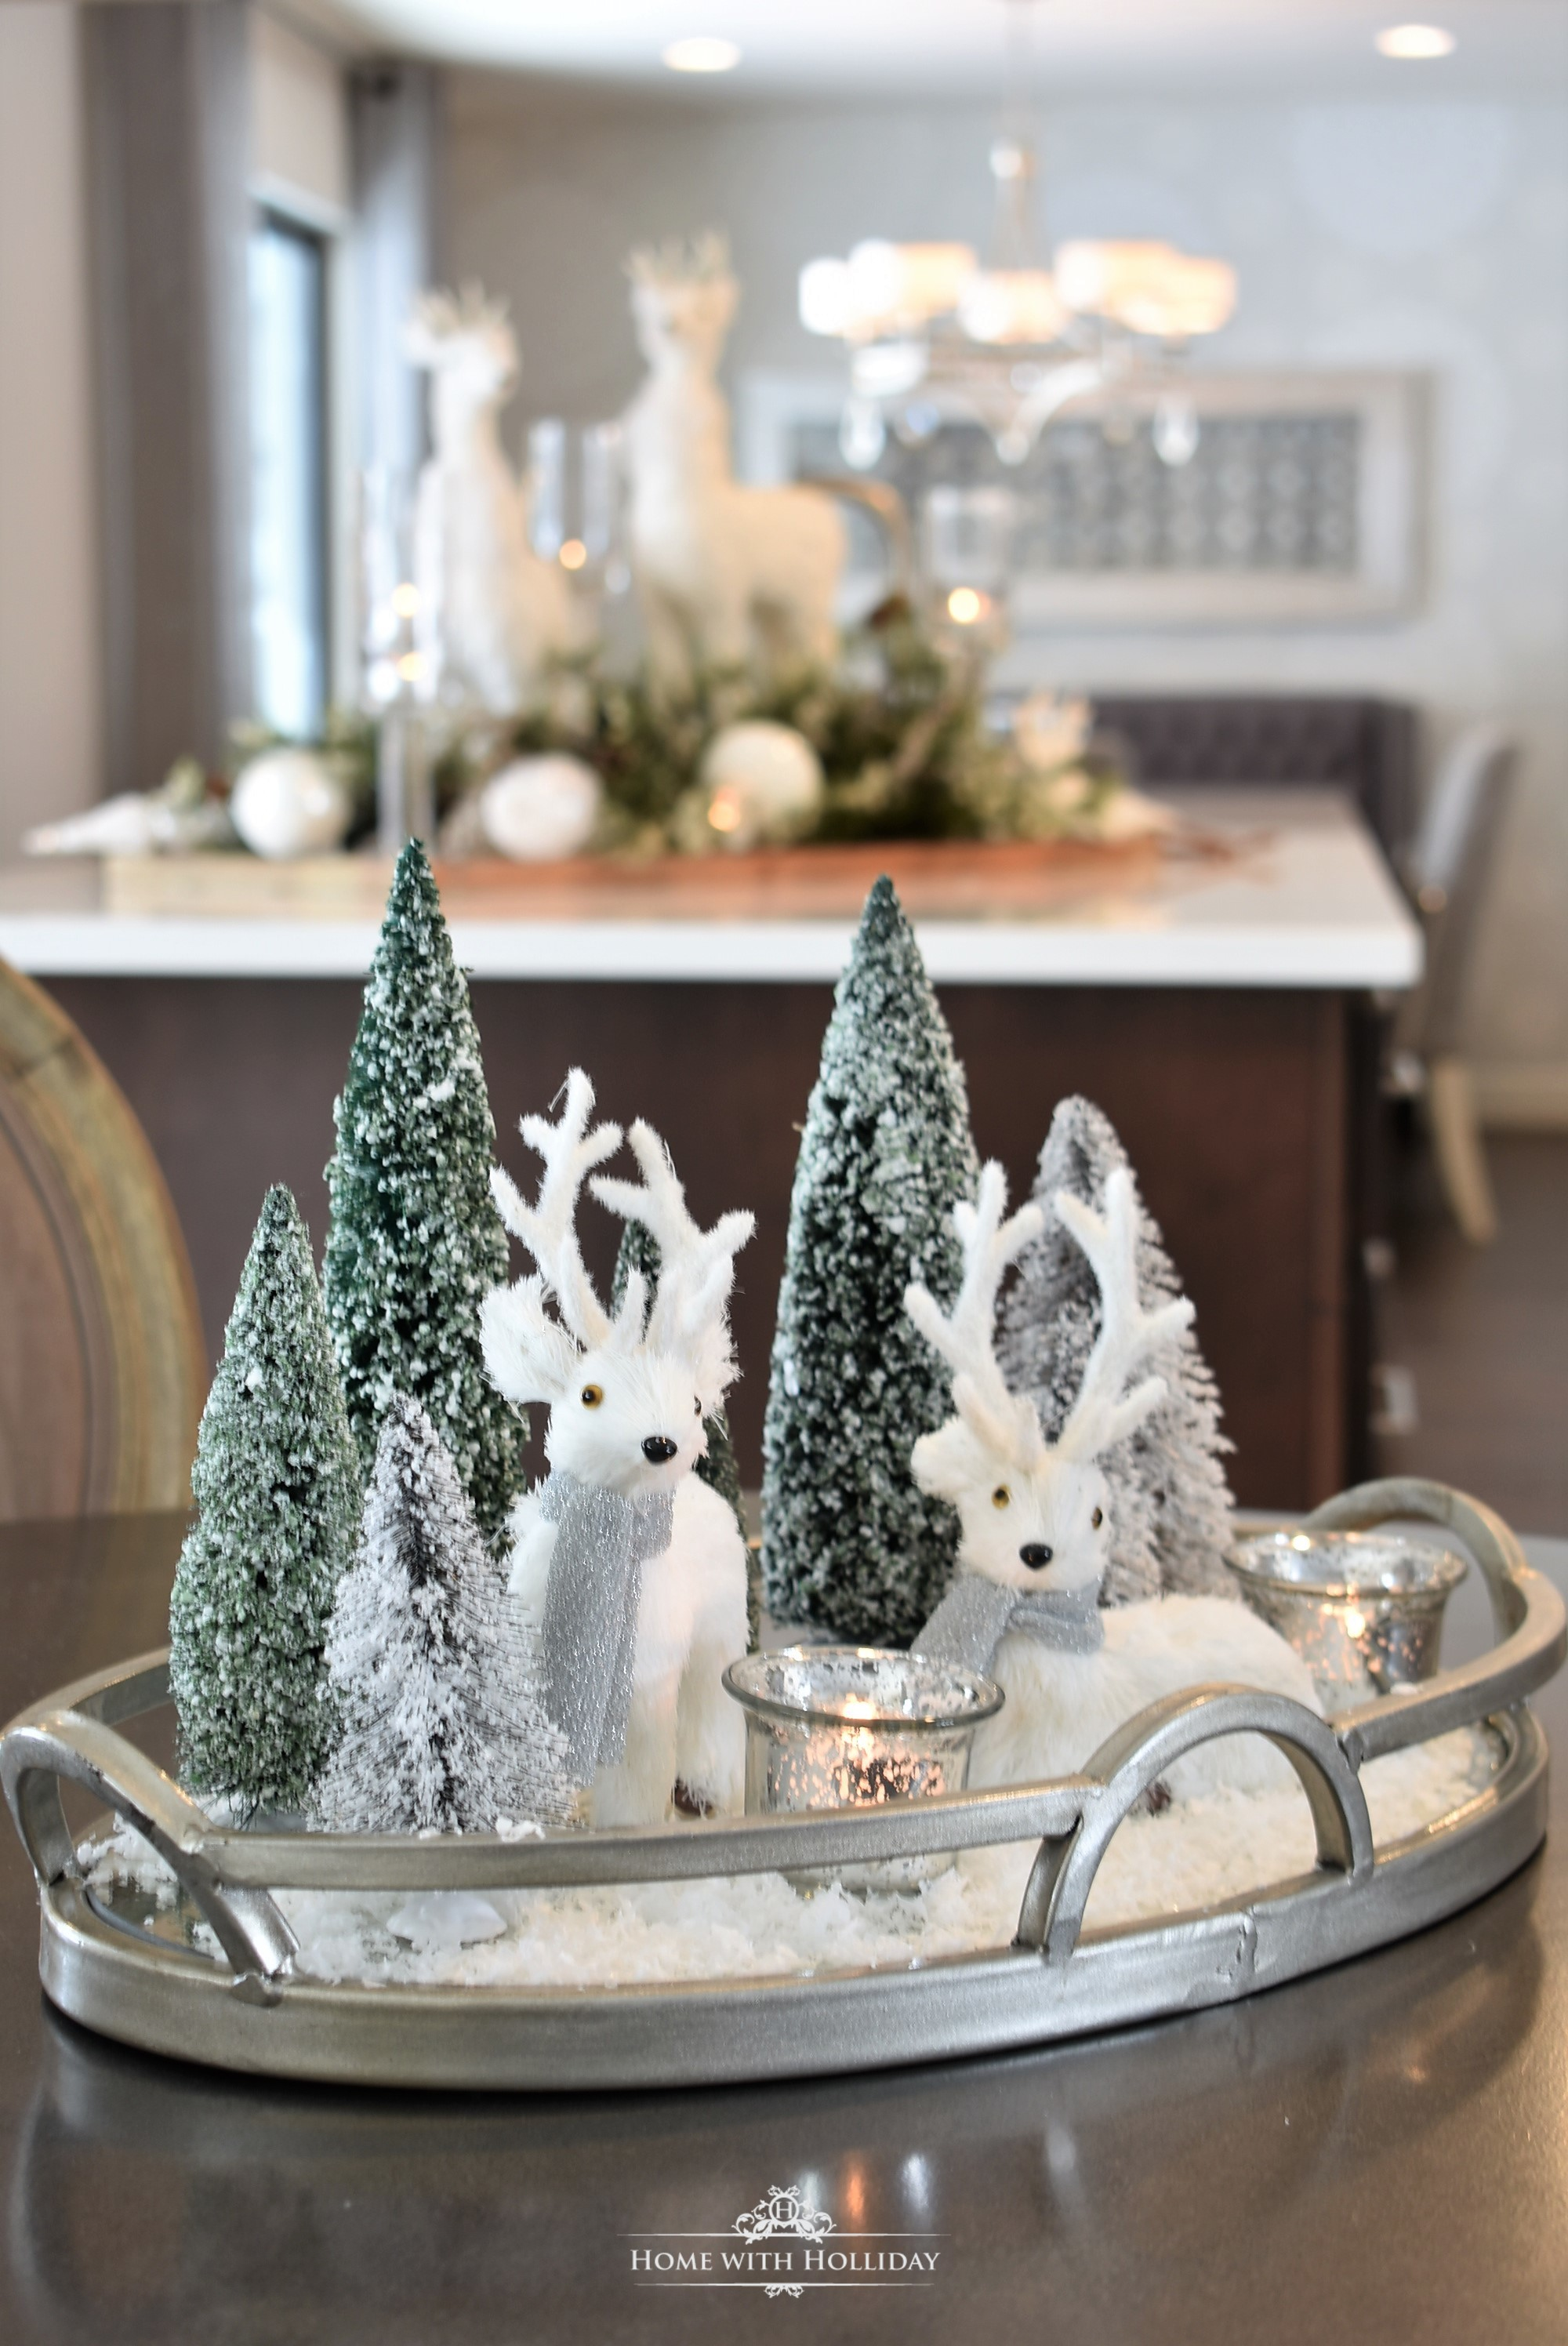 My Christmast Home Tour - Tiny Winter White Christmas Centerpiece - Home with Holliday